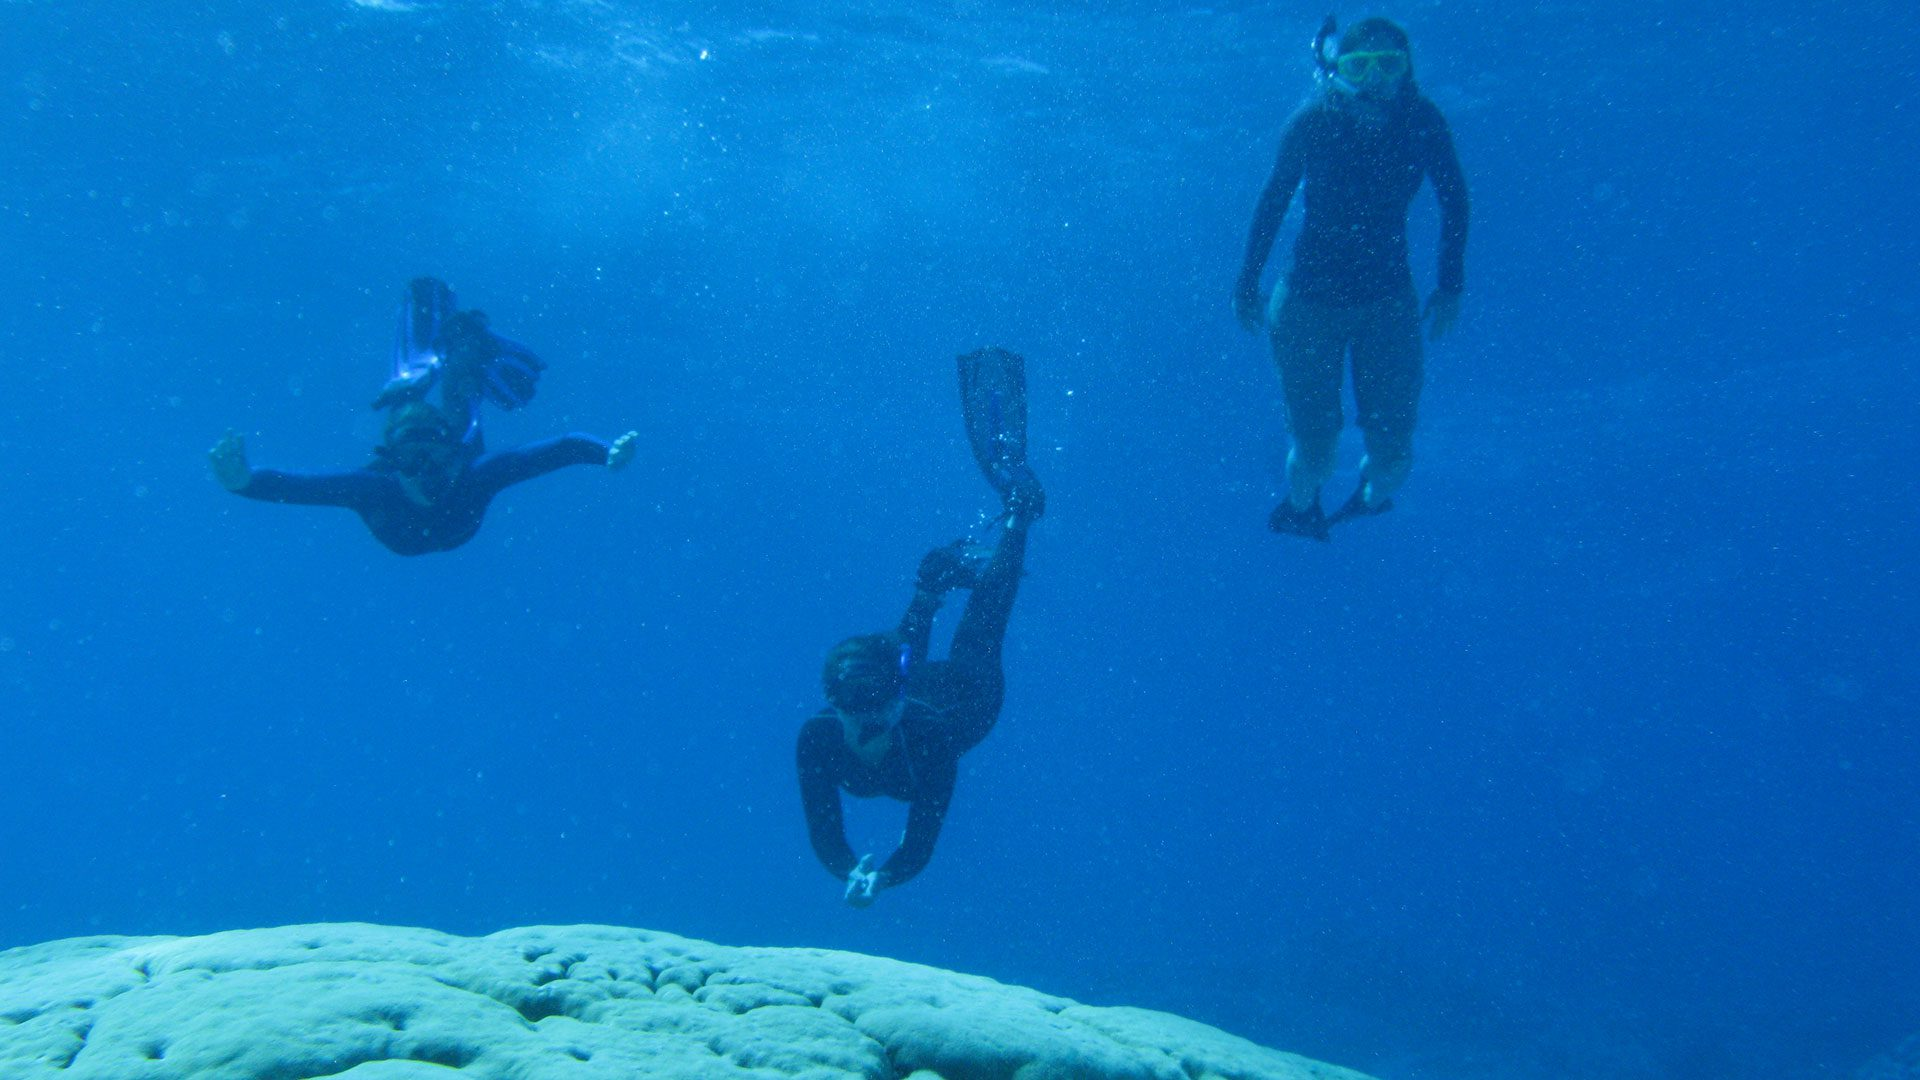 diving over coral